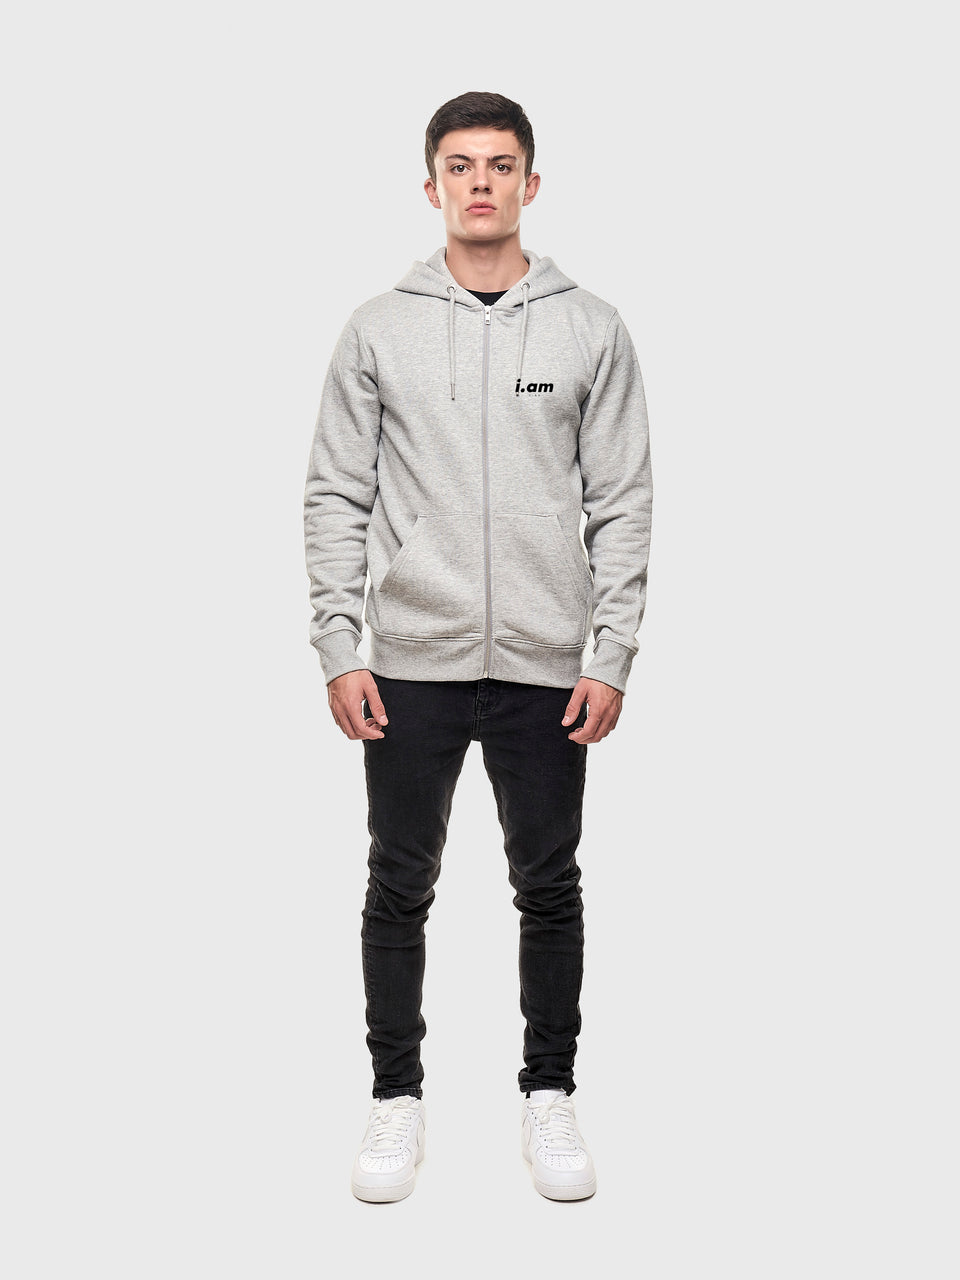 Iam who I am - Grey - Unisex zip up hoodie